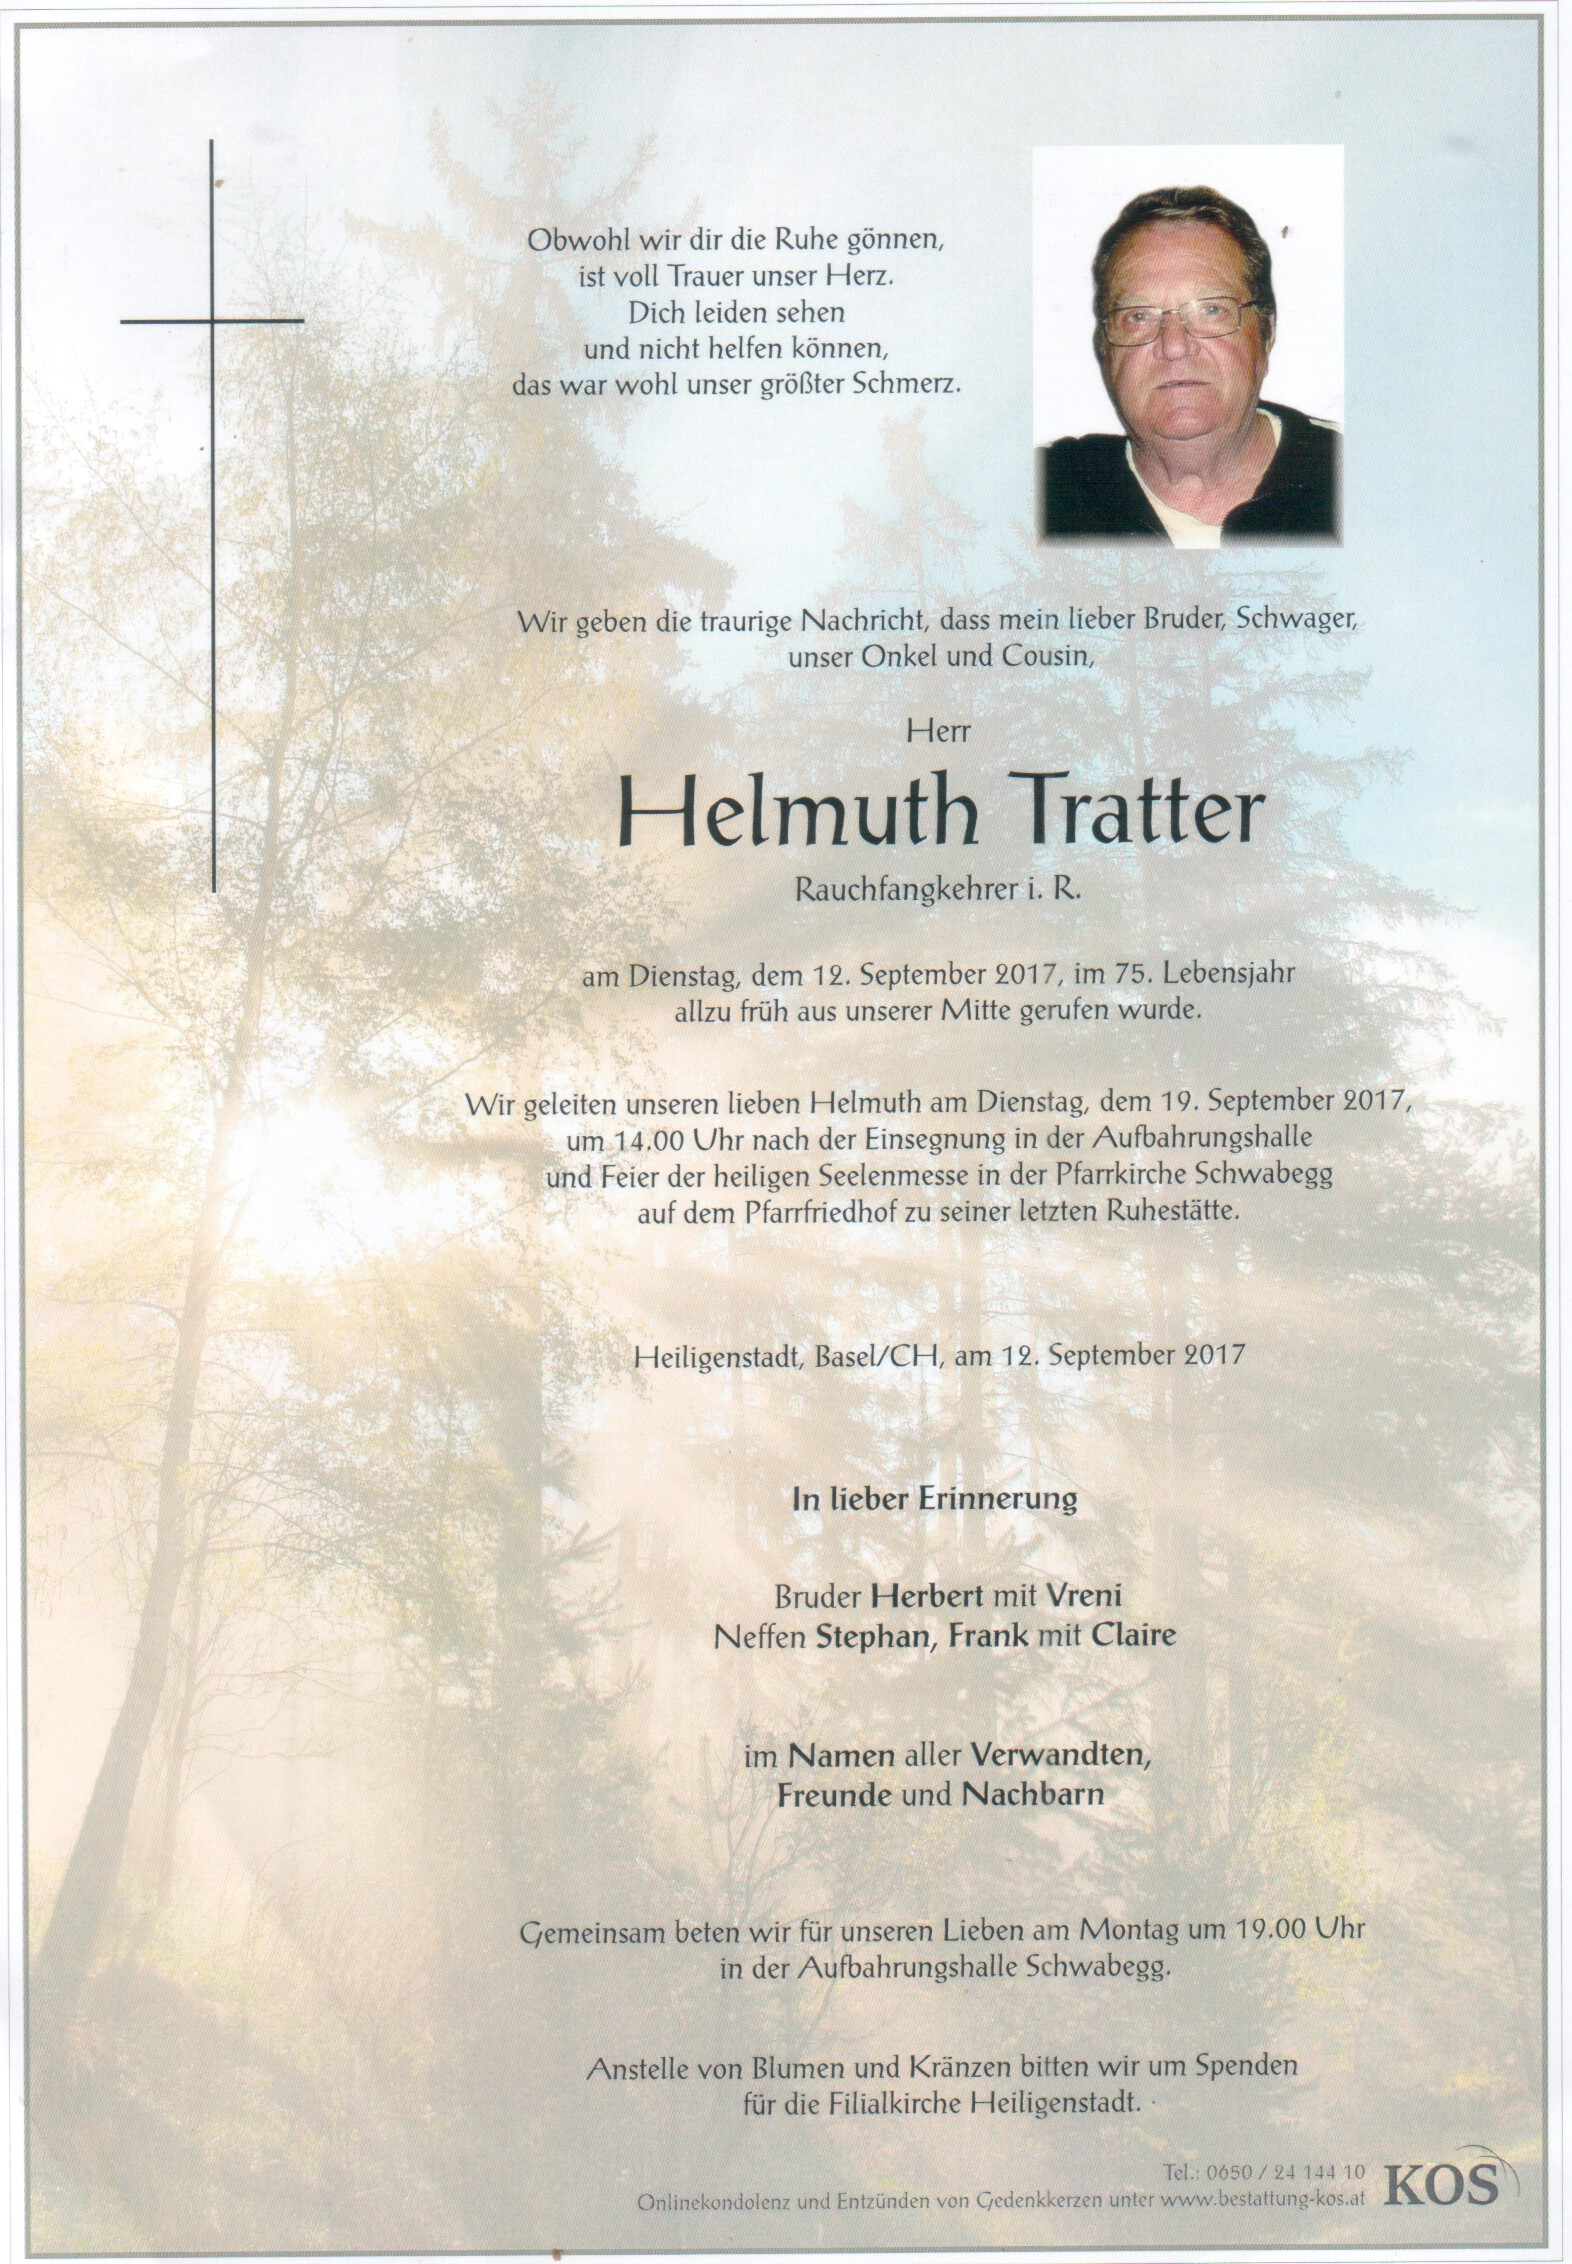 Tratter Helmuth